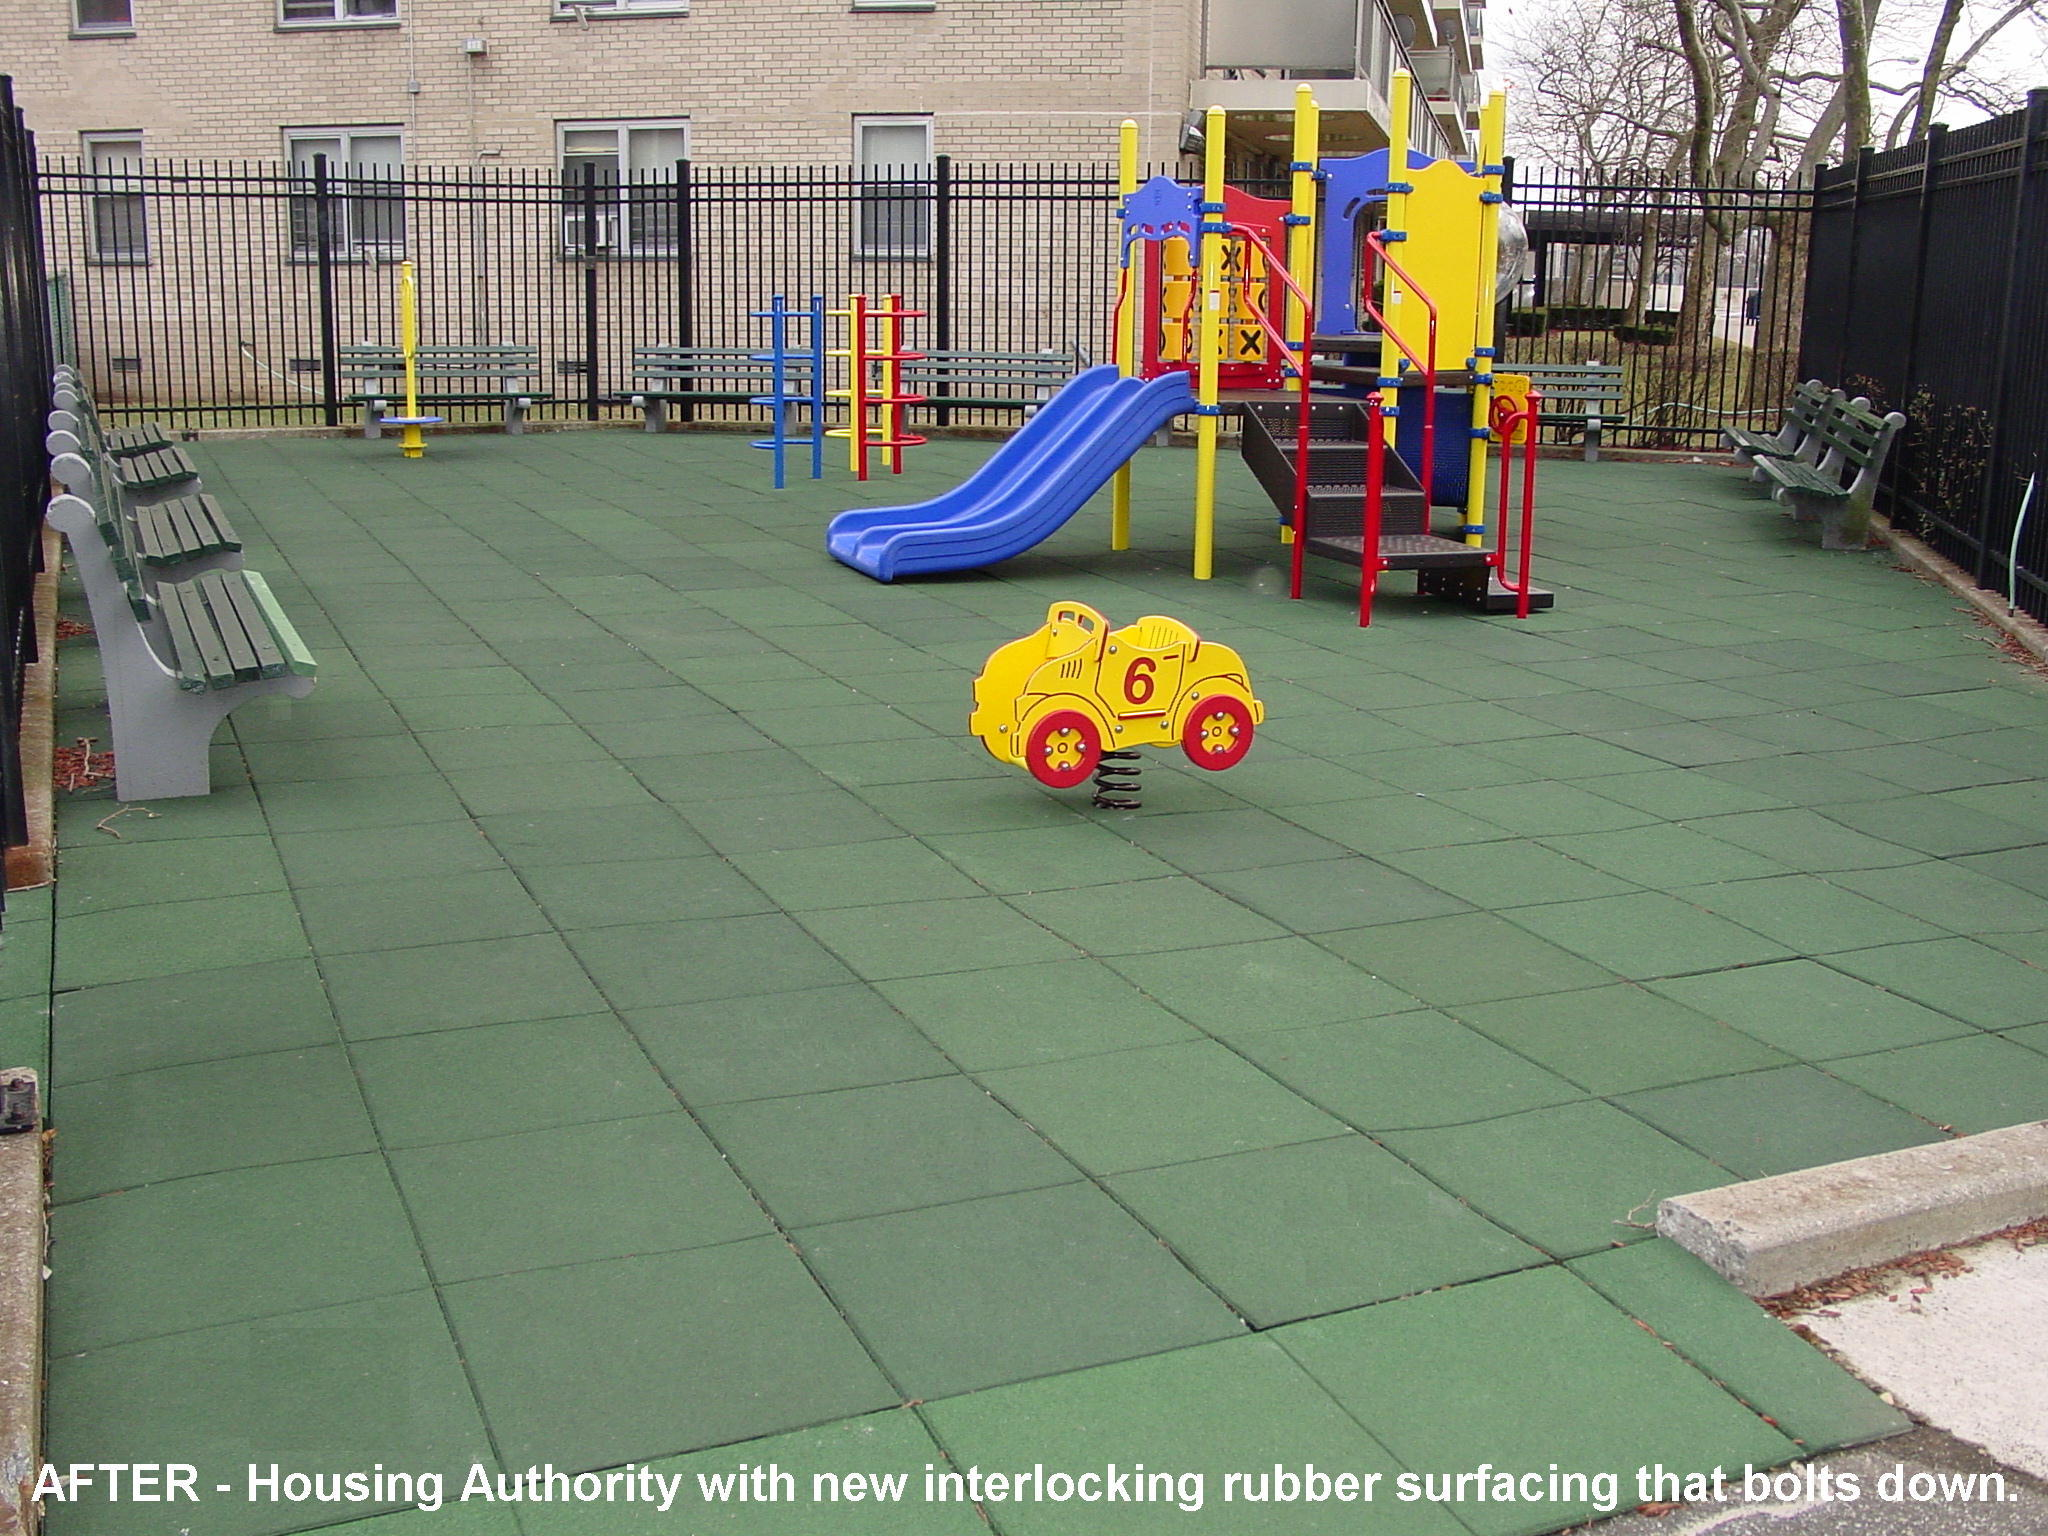 Unity daycare centers safety surfacing daycare flooring install a colorful playground unit in conjuction with green for the color of choice for the safety tiles to give children and adults the atmosphere they dailygadgetfo Images